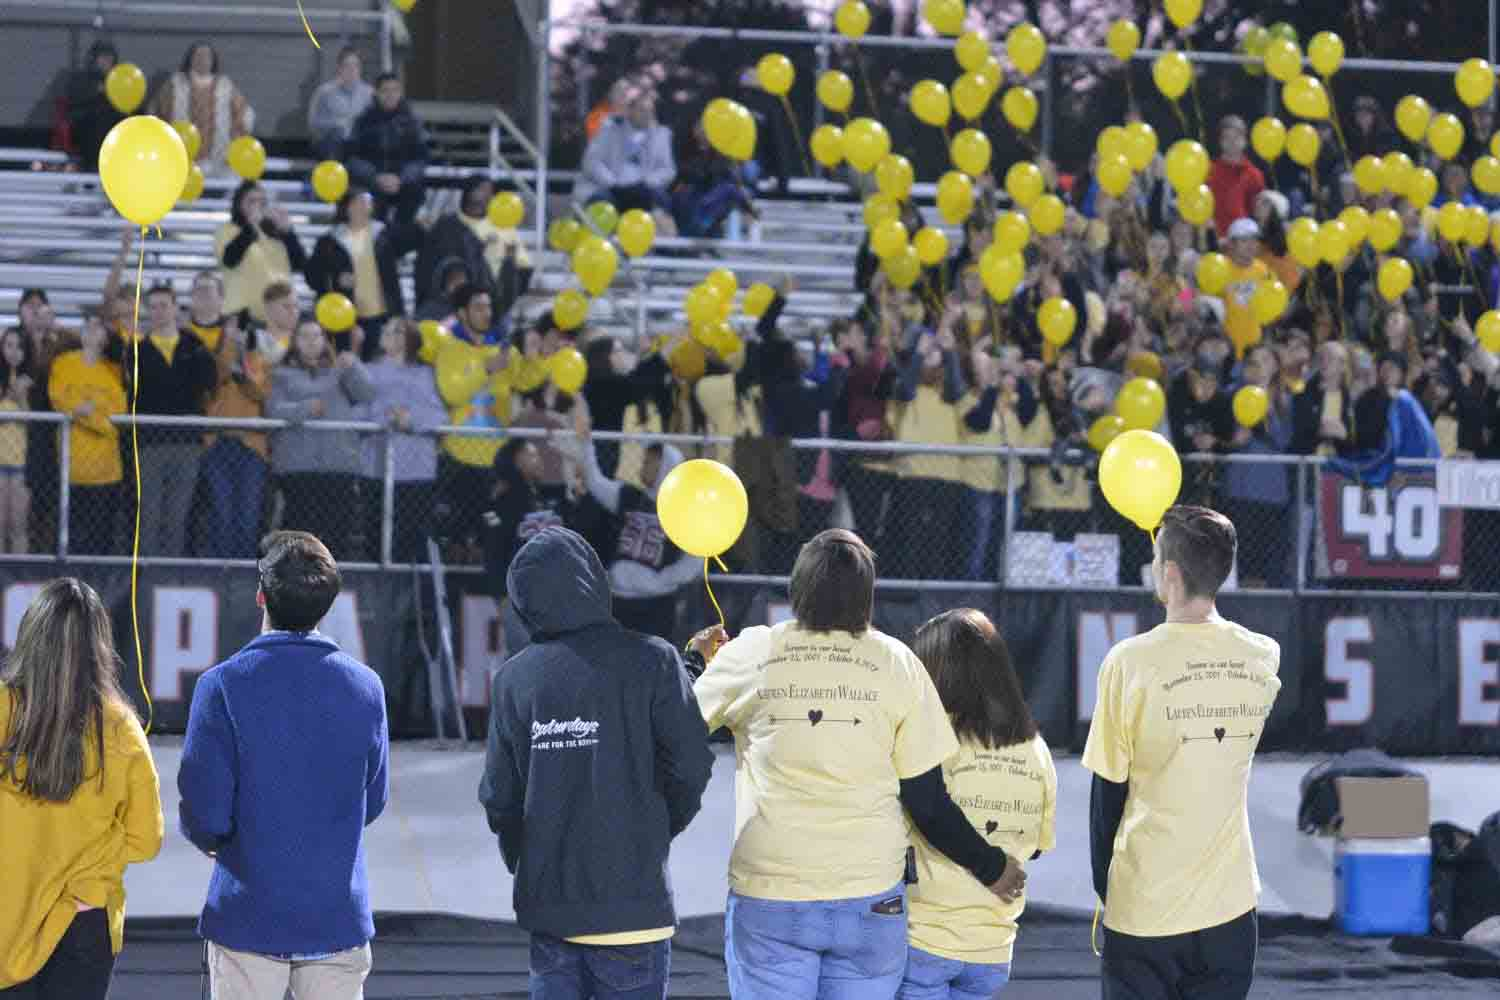 Members of the senior class stand on the football field before the Decatur kickoff to release balloons in honor of senior Lauren Wallace. Wallace lost her life in a car accident over fall break.